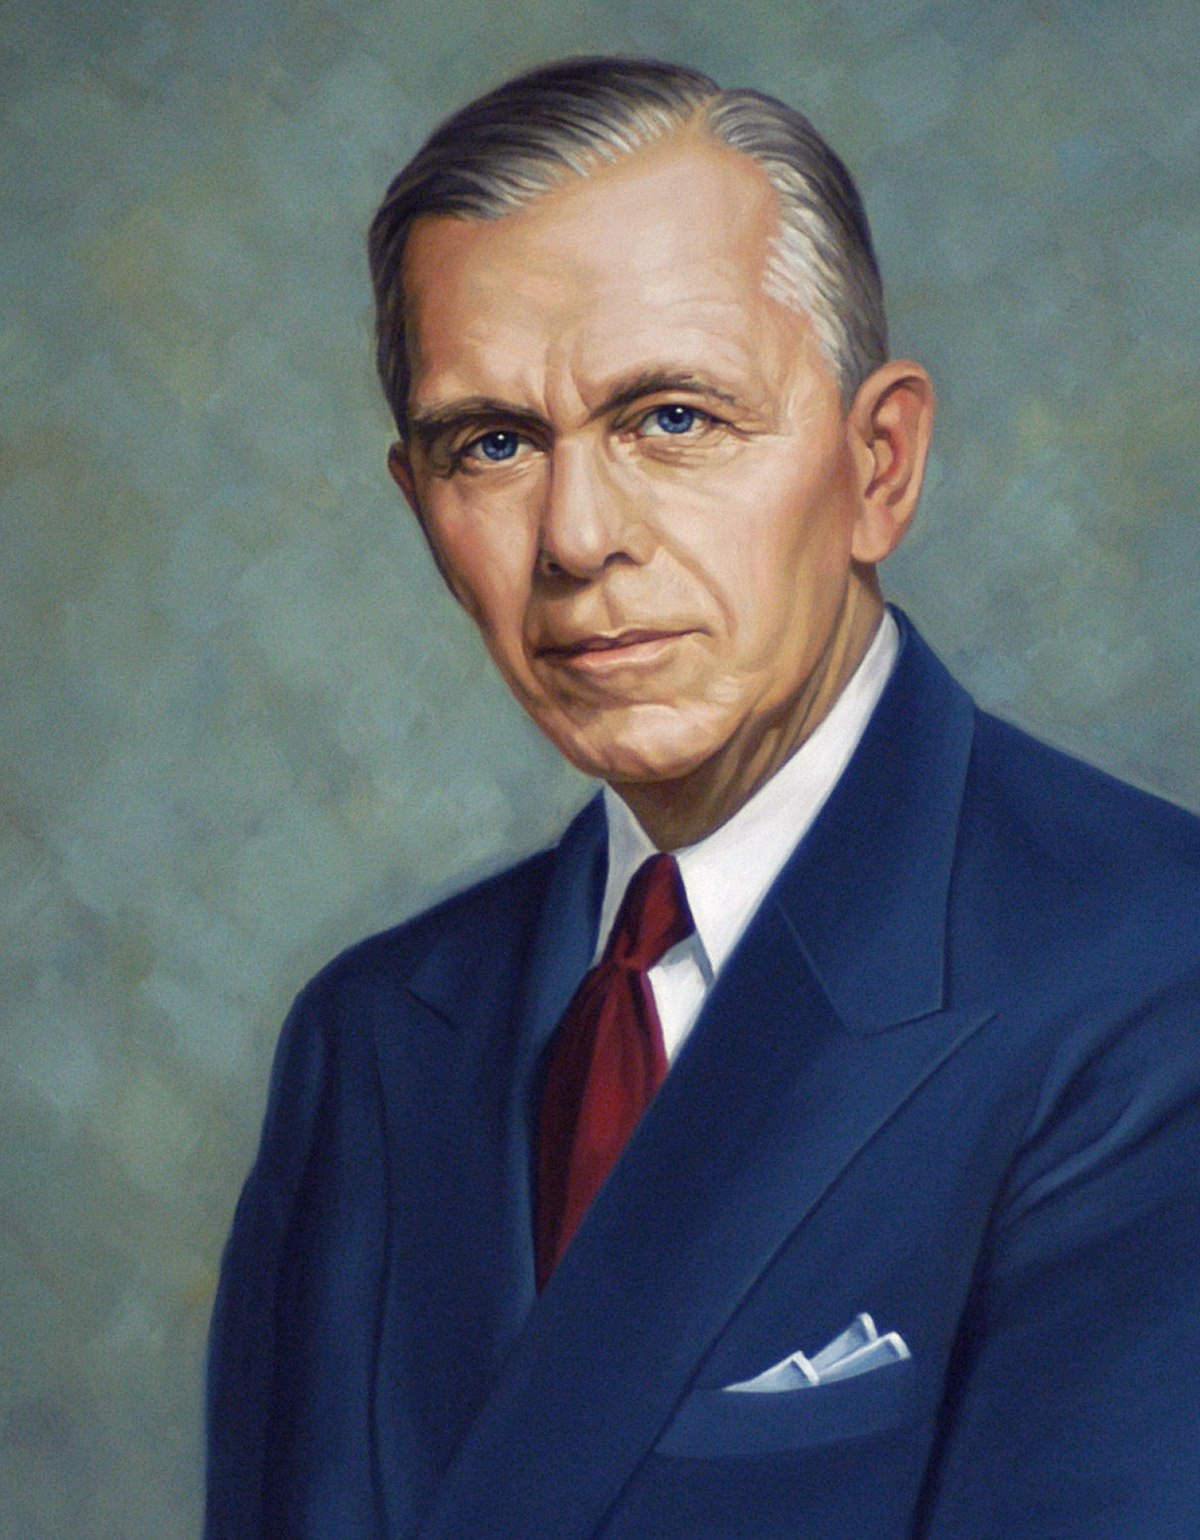 George Marshall - Wikipedia